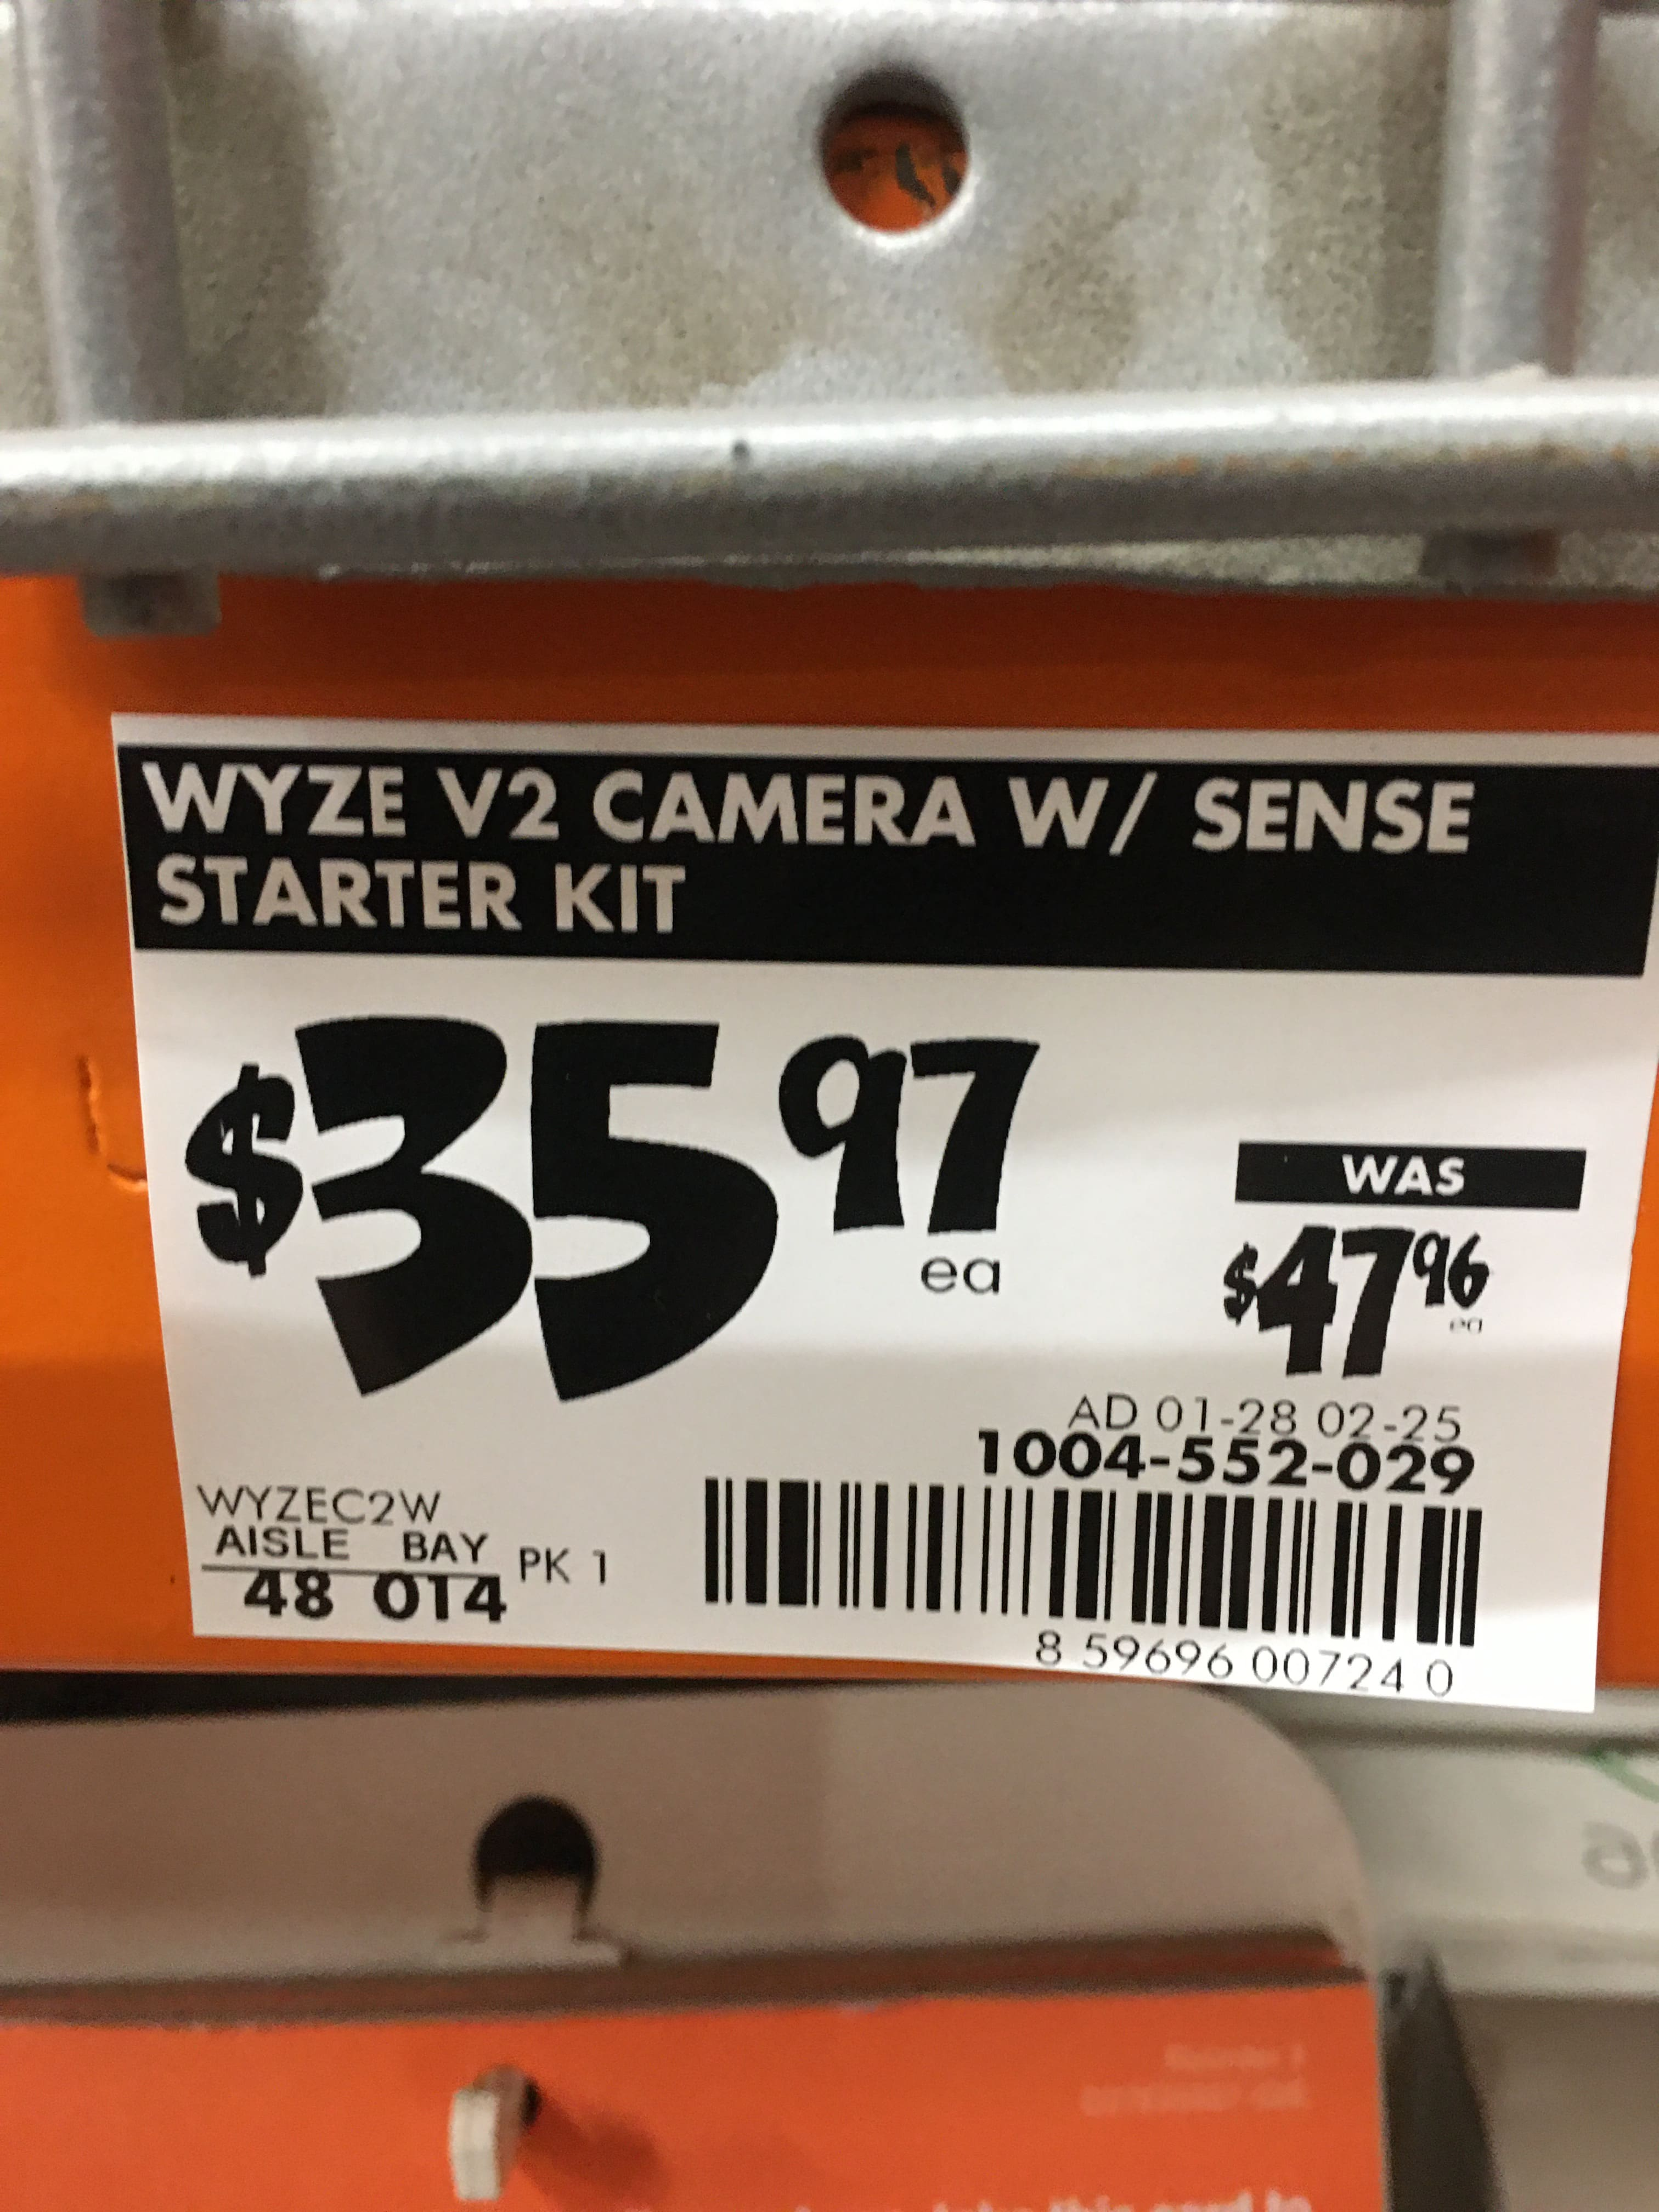 Wyze Cam V2 1080P Indoor Smart Home Camera with Wyze Sense Starter Kit $35.97 in-store (YMMV) - Home Depot